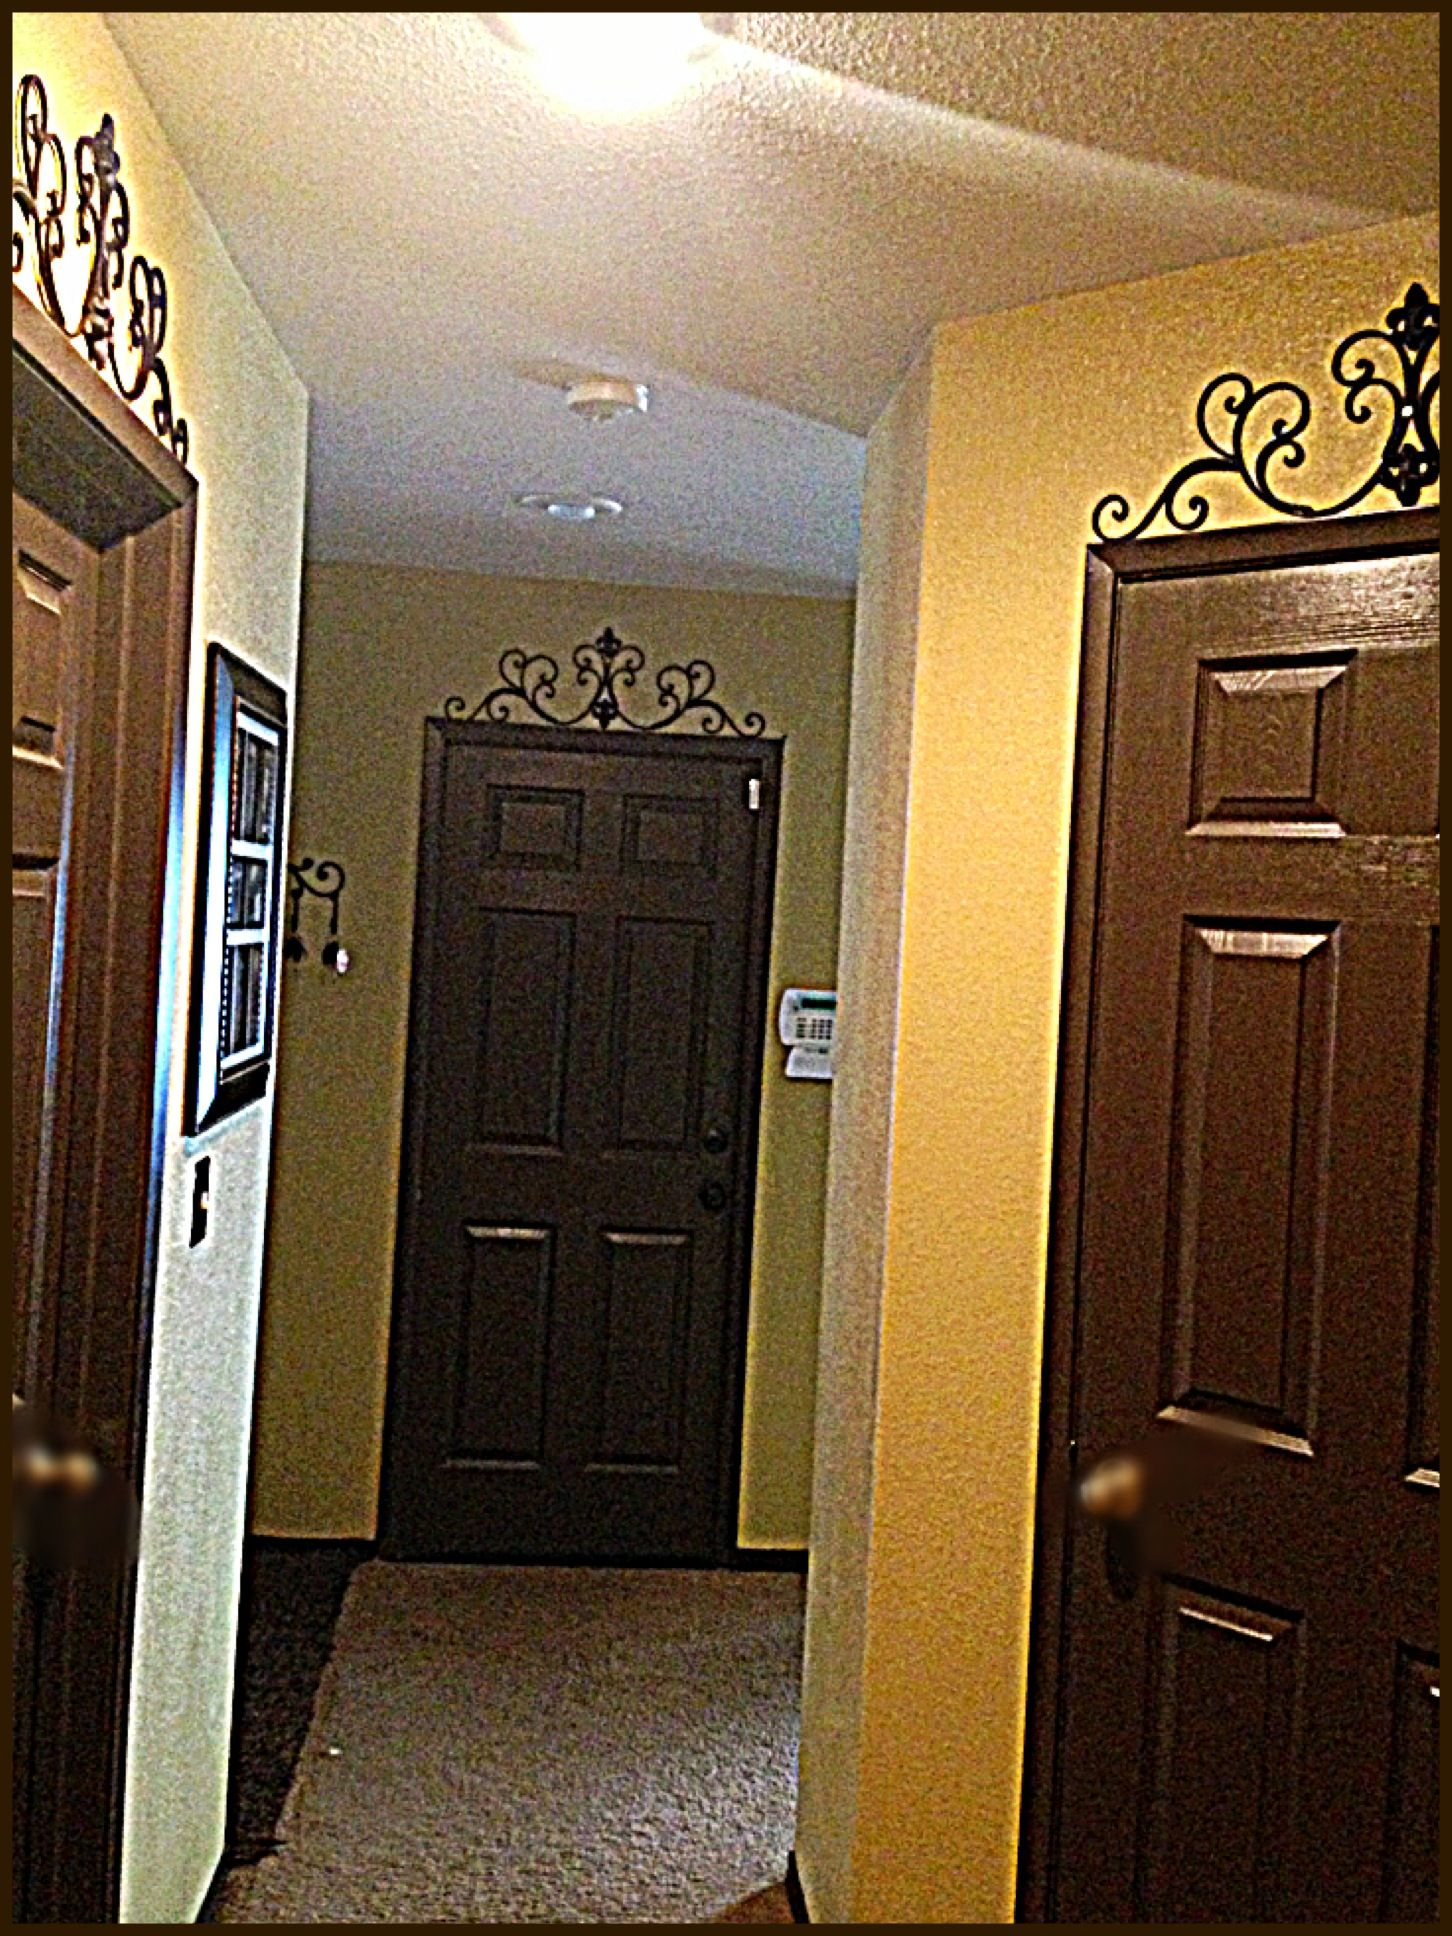 Beau Espresso Brown Doors Through Our My House, Matching Baseboards And Trim...  Home Sweet Home DIY Dark Brown Interior Doors❤ Iron Accents On Top Of All  Doors ...